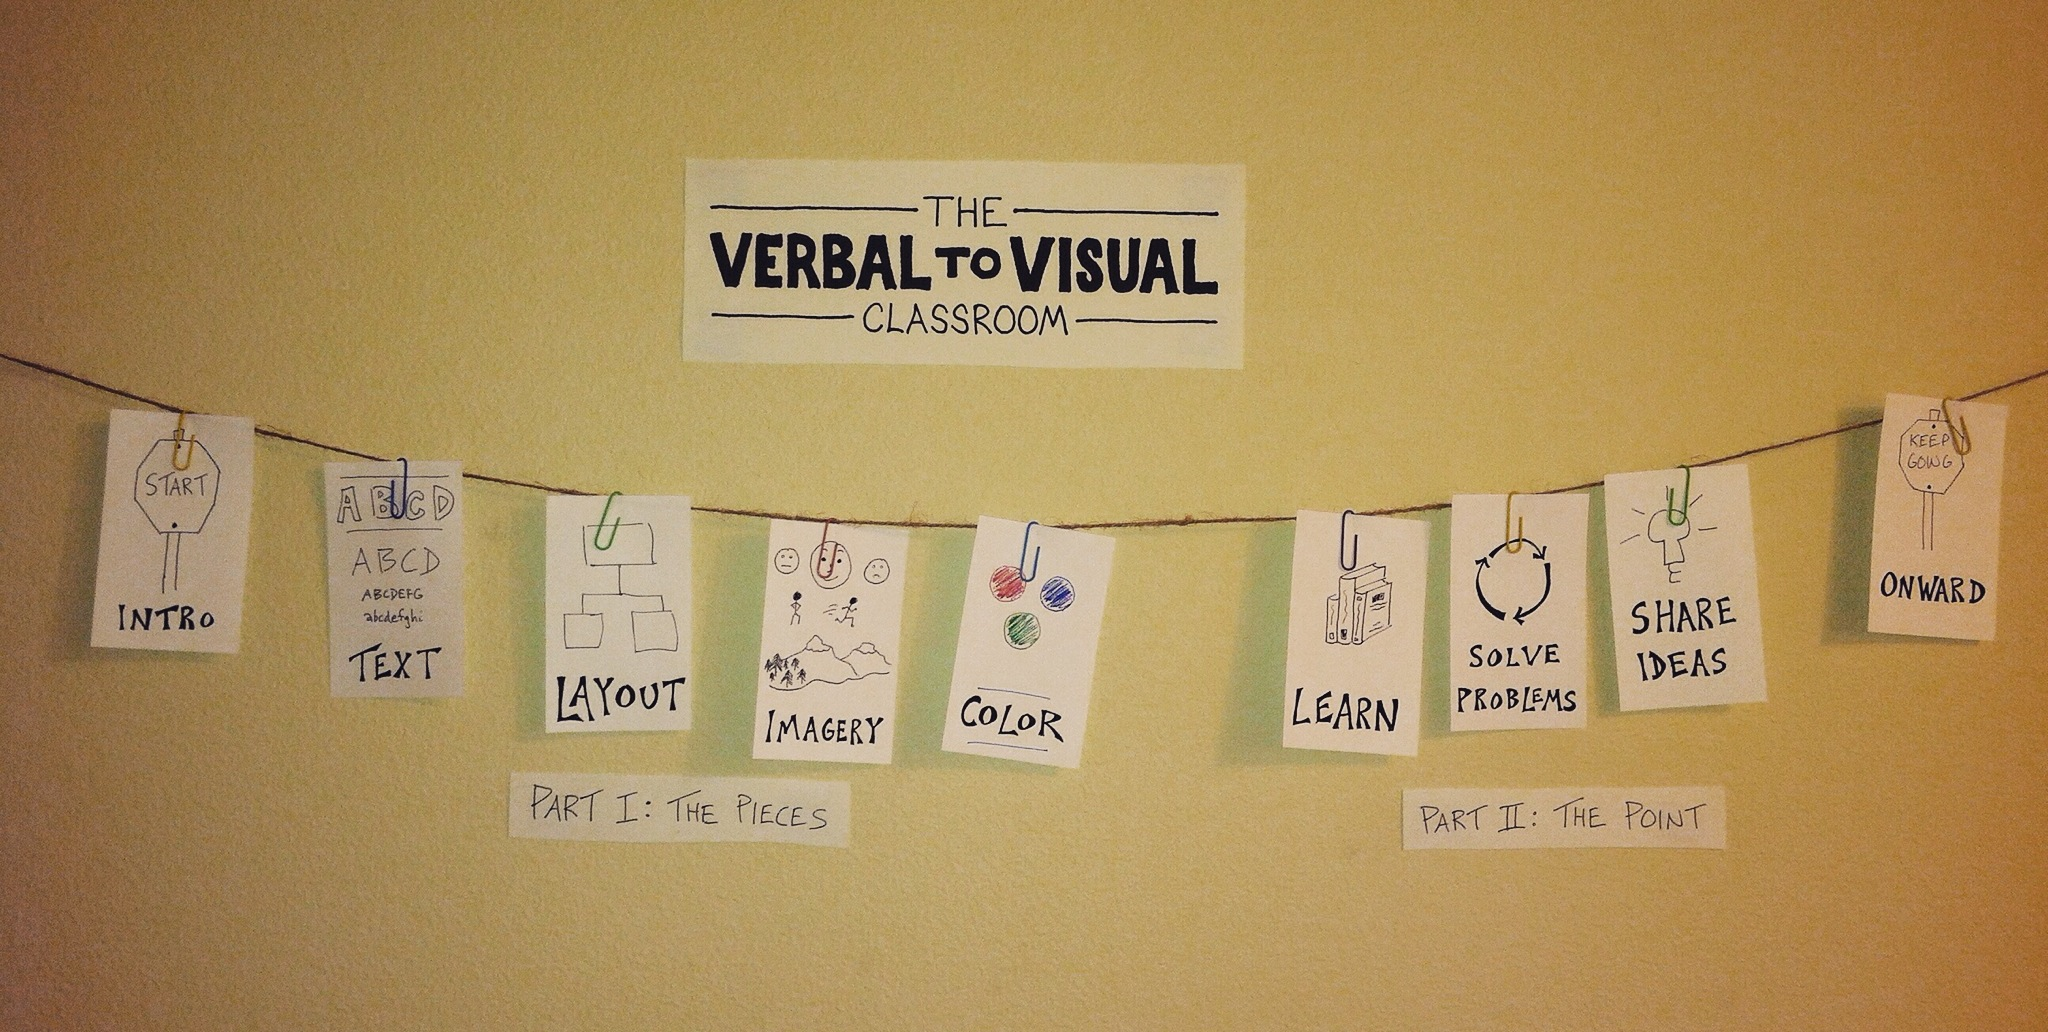 The Verbal To Visual Classroom Gets A Clothesline - Verbal To Visual